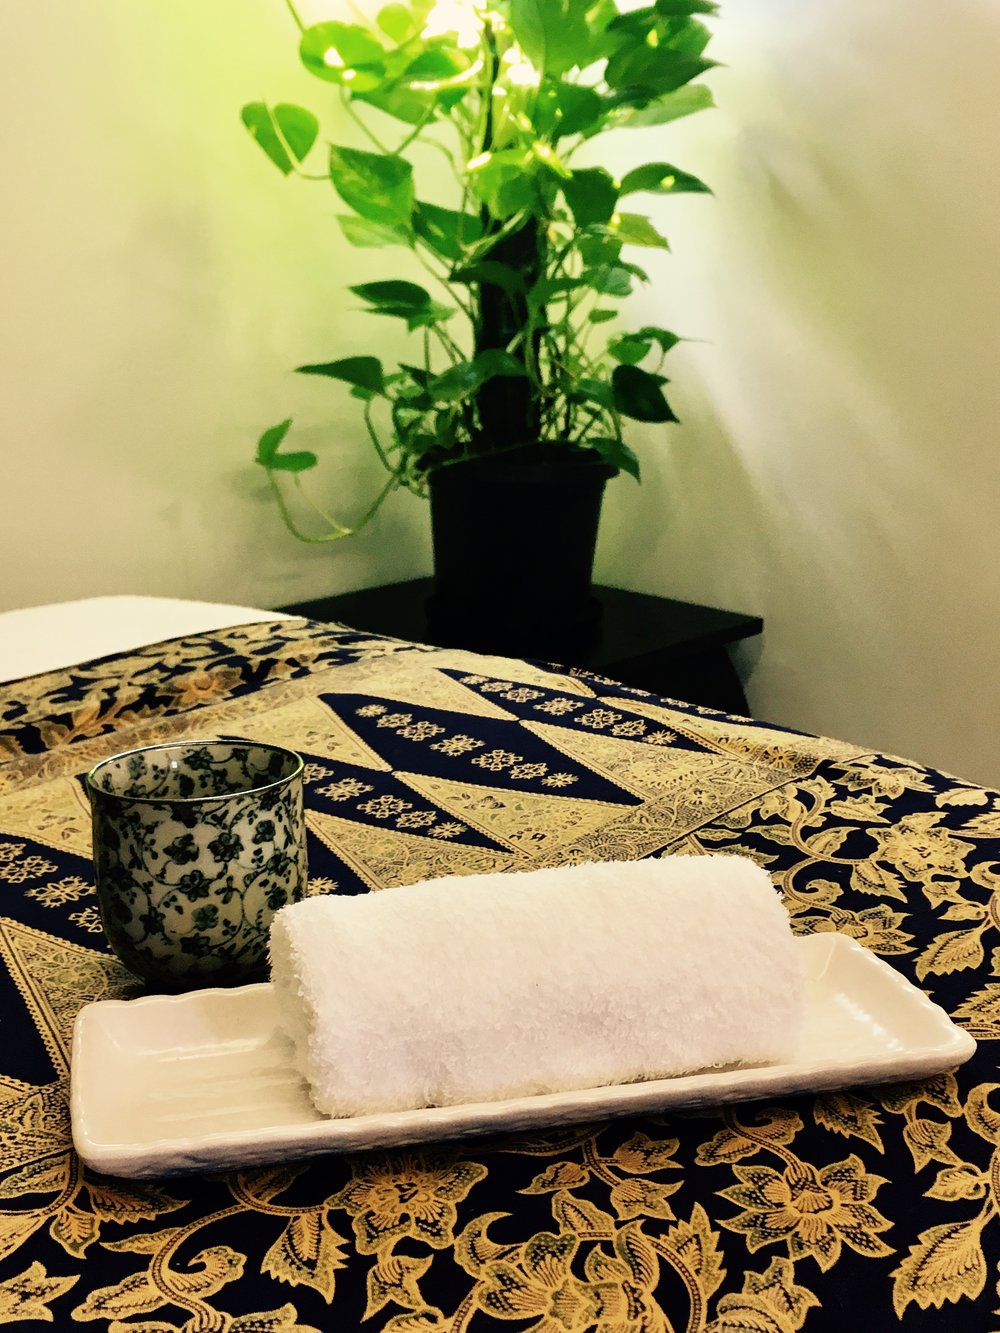 Enjoy a hot towel and herbal tea after your massage.